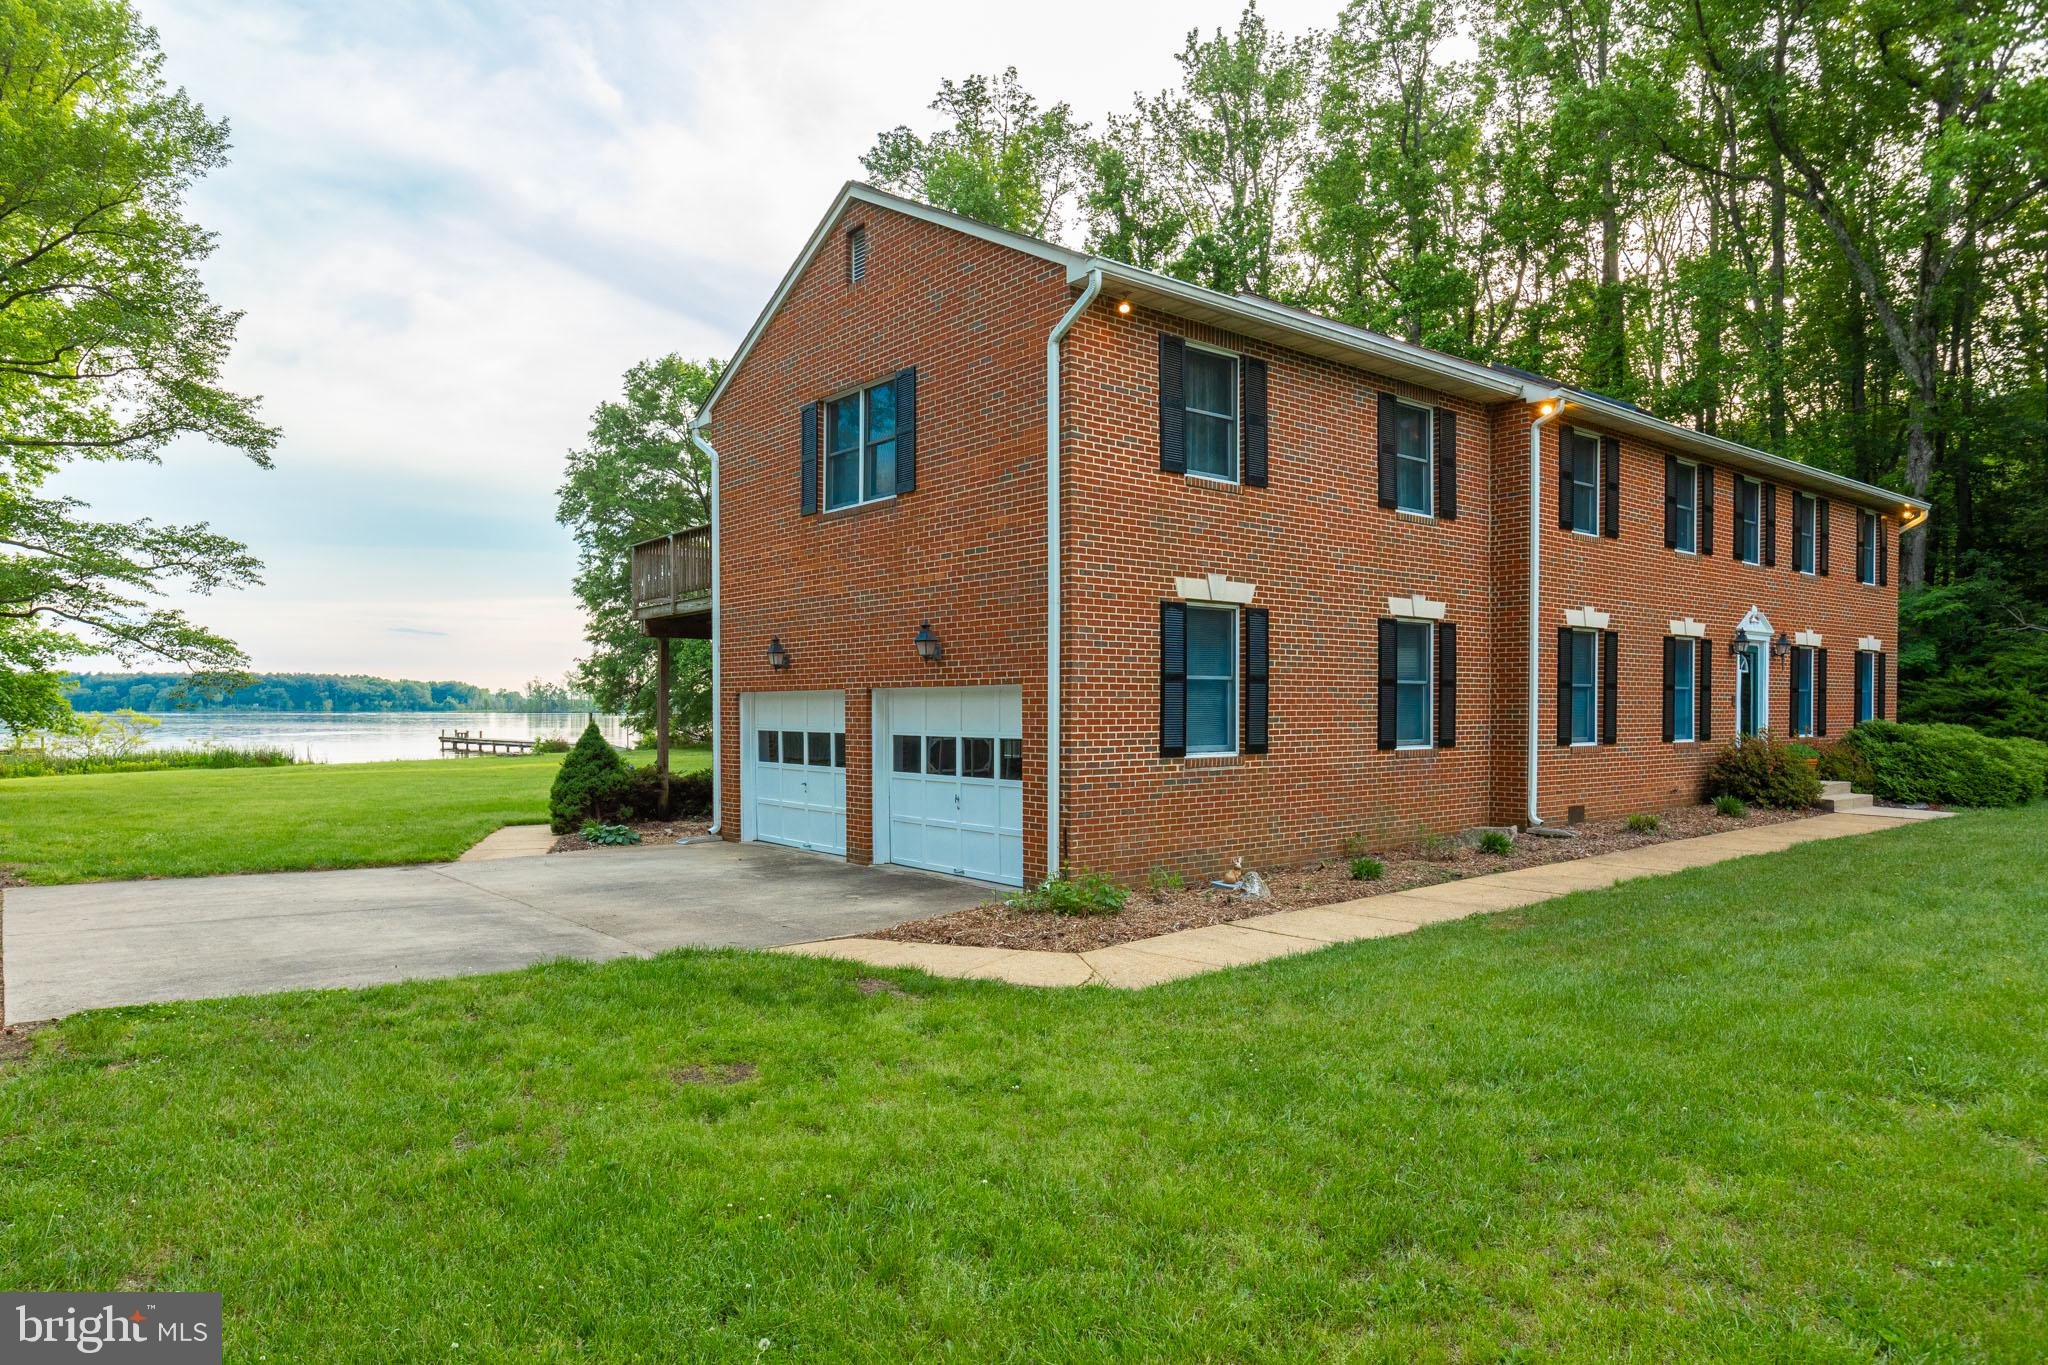 4215 CREEDS MILL PLACE, MARBURY, MD 20658